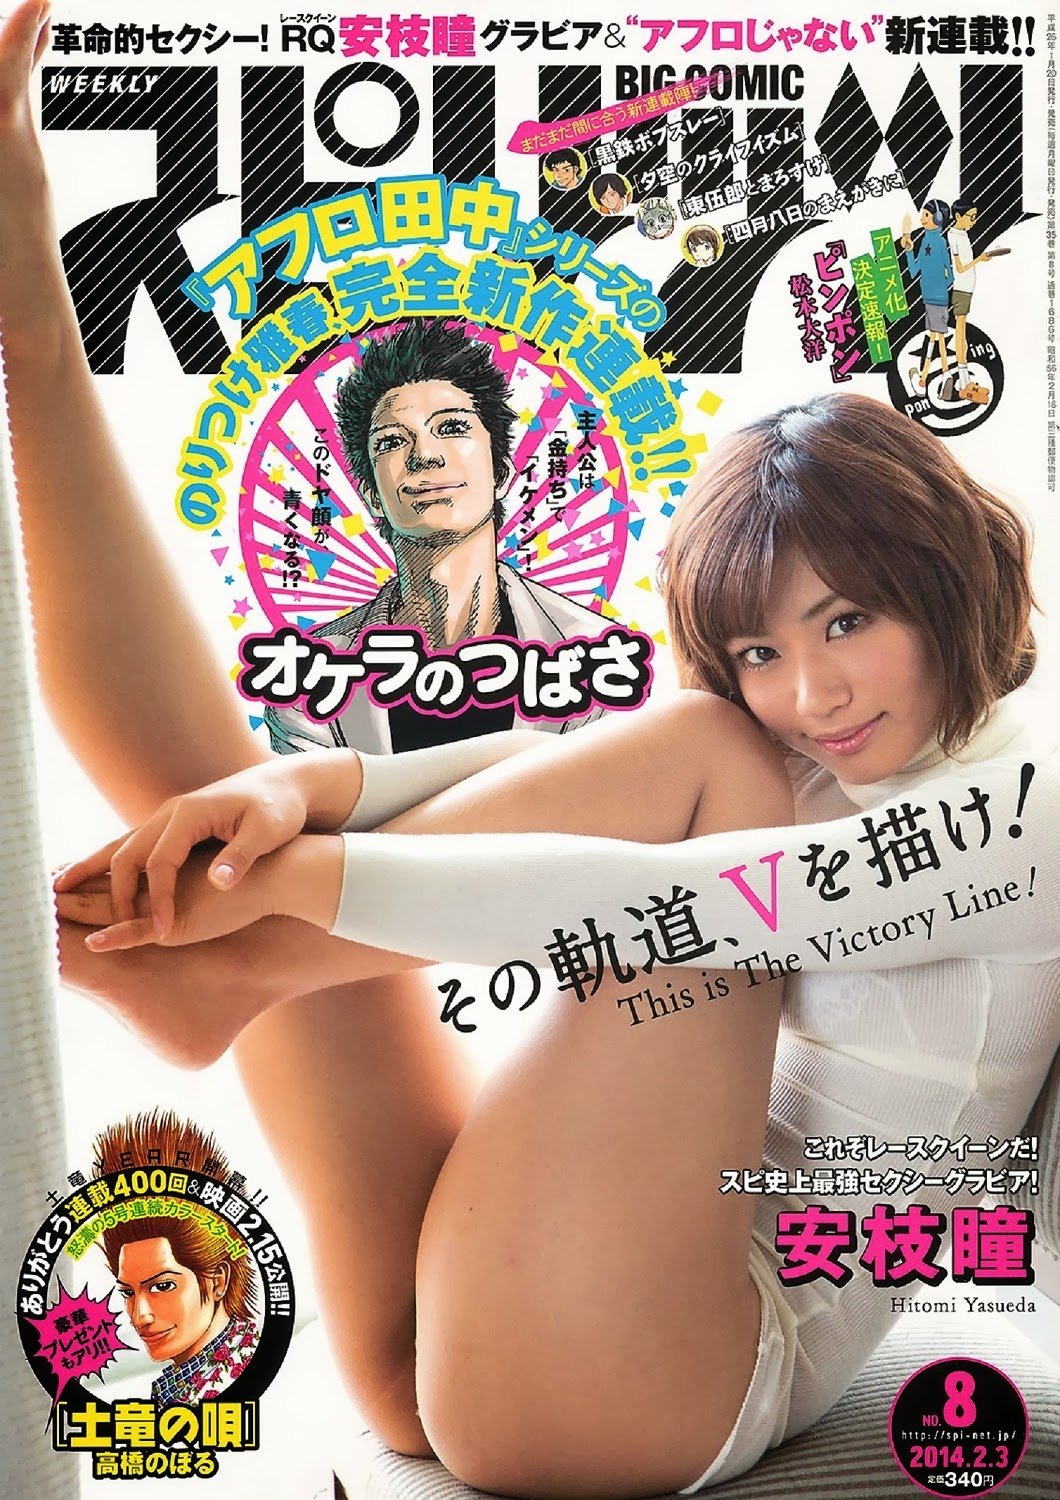 Yasueda Hitomi 安枝瞳 Big Comic Spirits Feb 2014 cover